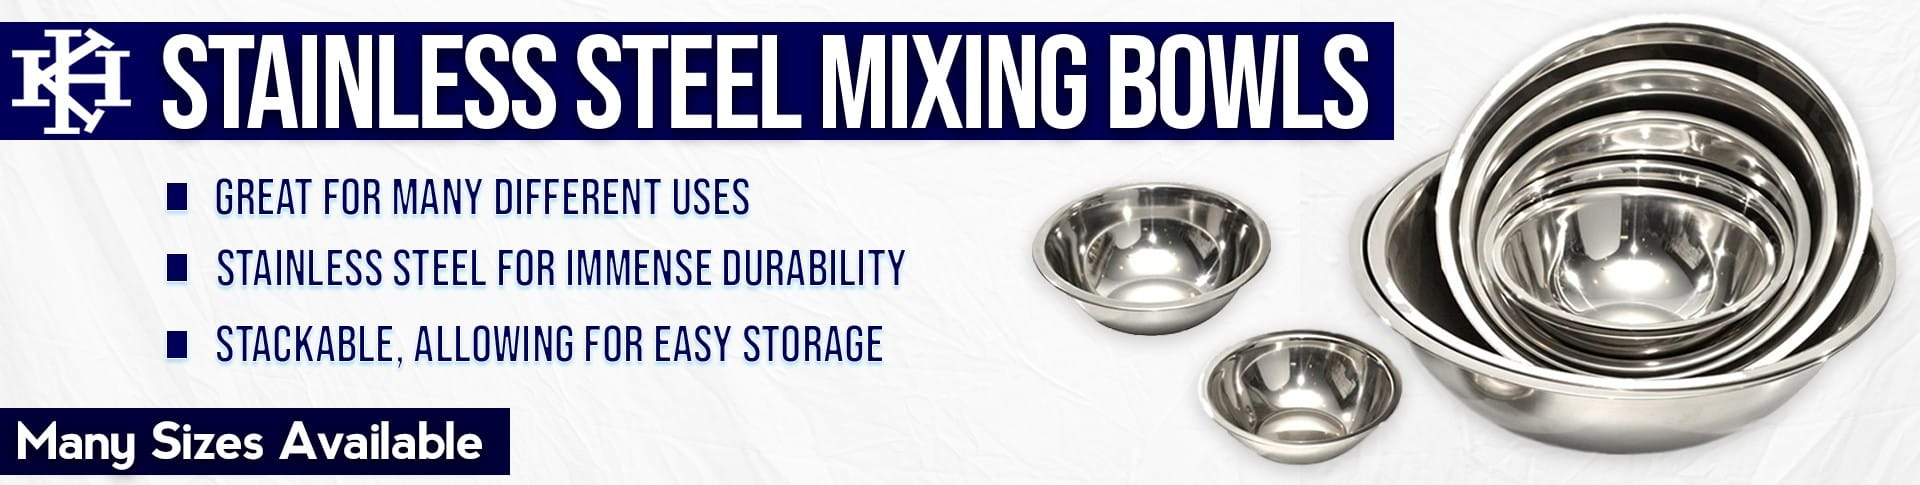 KH Stainless Steel Mixing Bowls